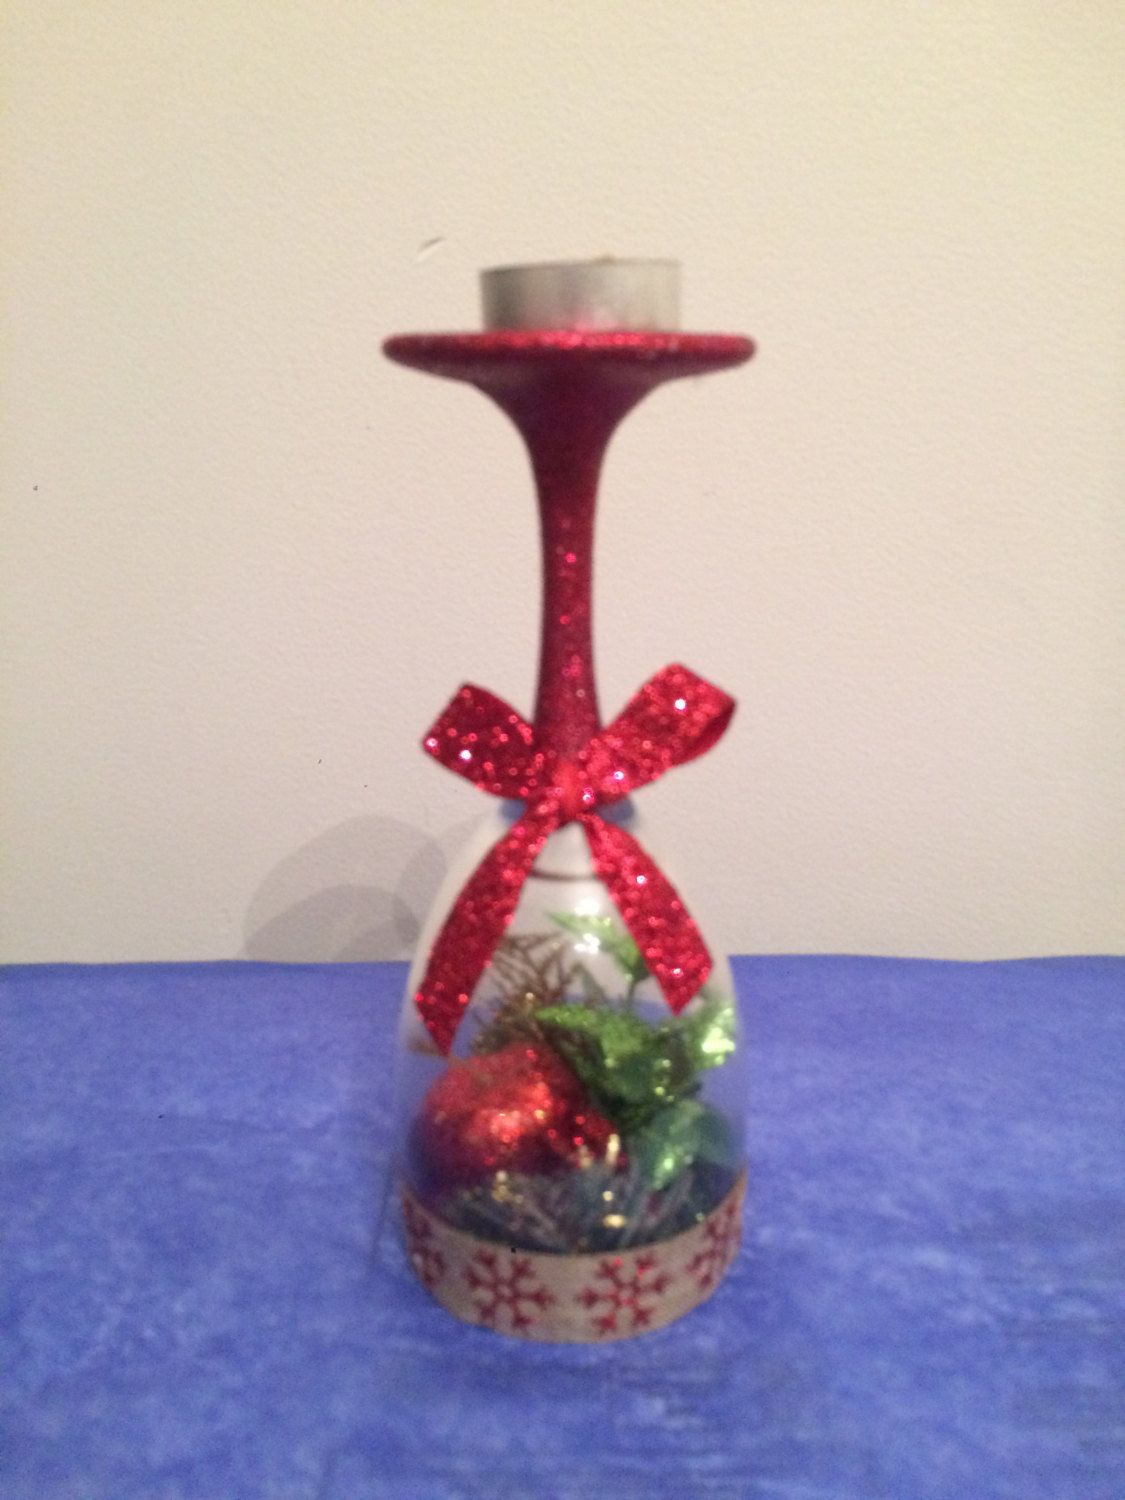 Wine glass creation - glasses and candle holder - can be be customized for the perfect unique gift by Asquaredwinedesigns on Etsy https://www.etsy.com/listing/255402640/wine-glass-creation-glasses-and-candle